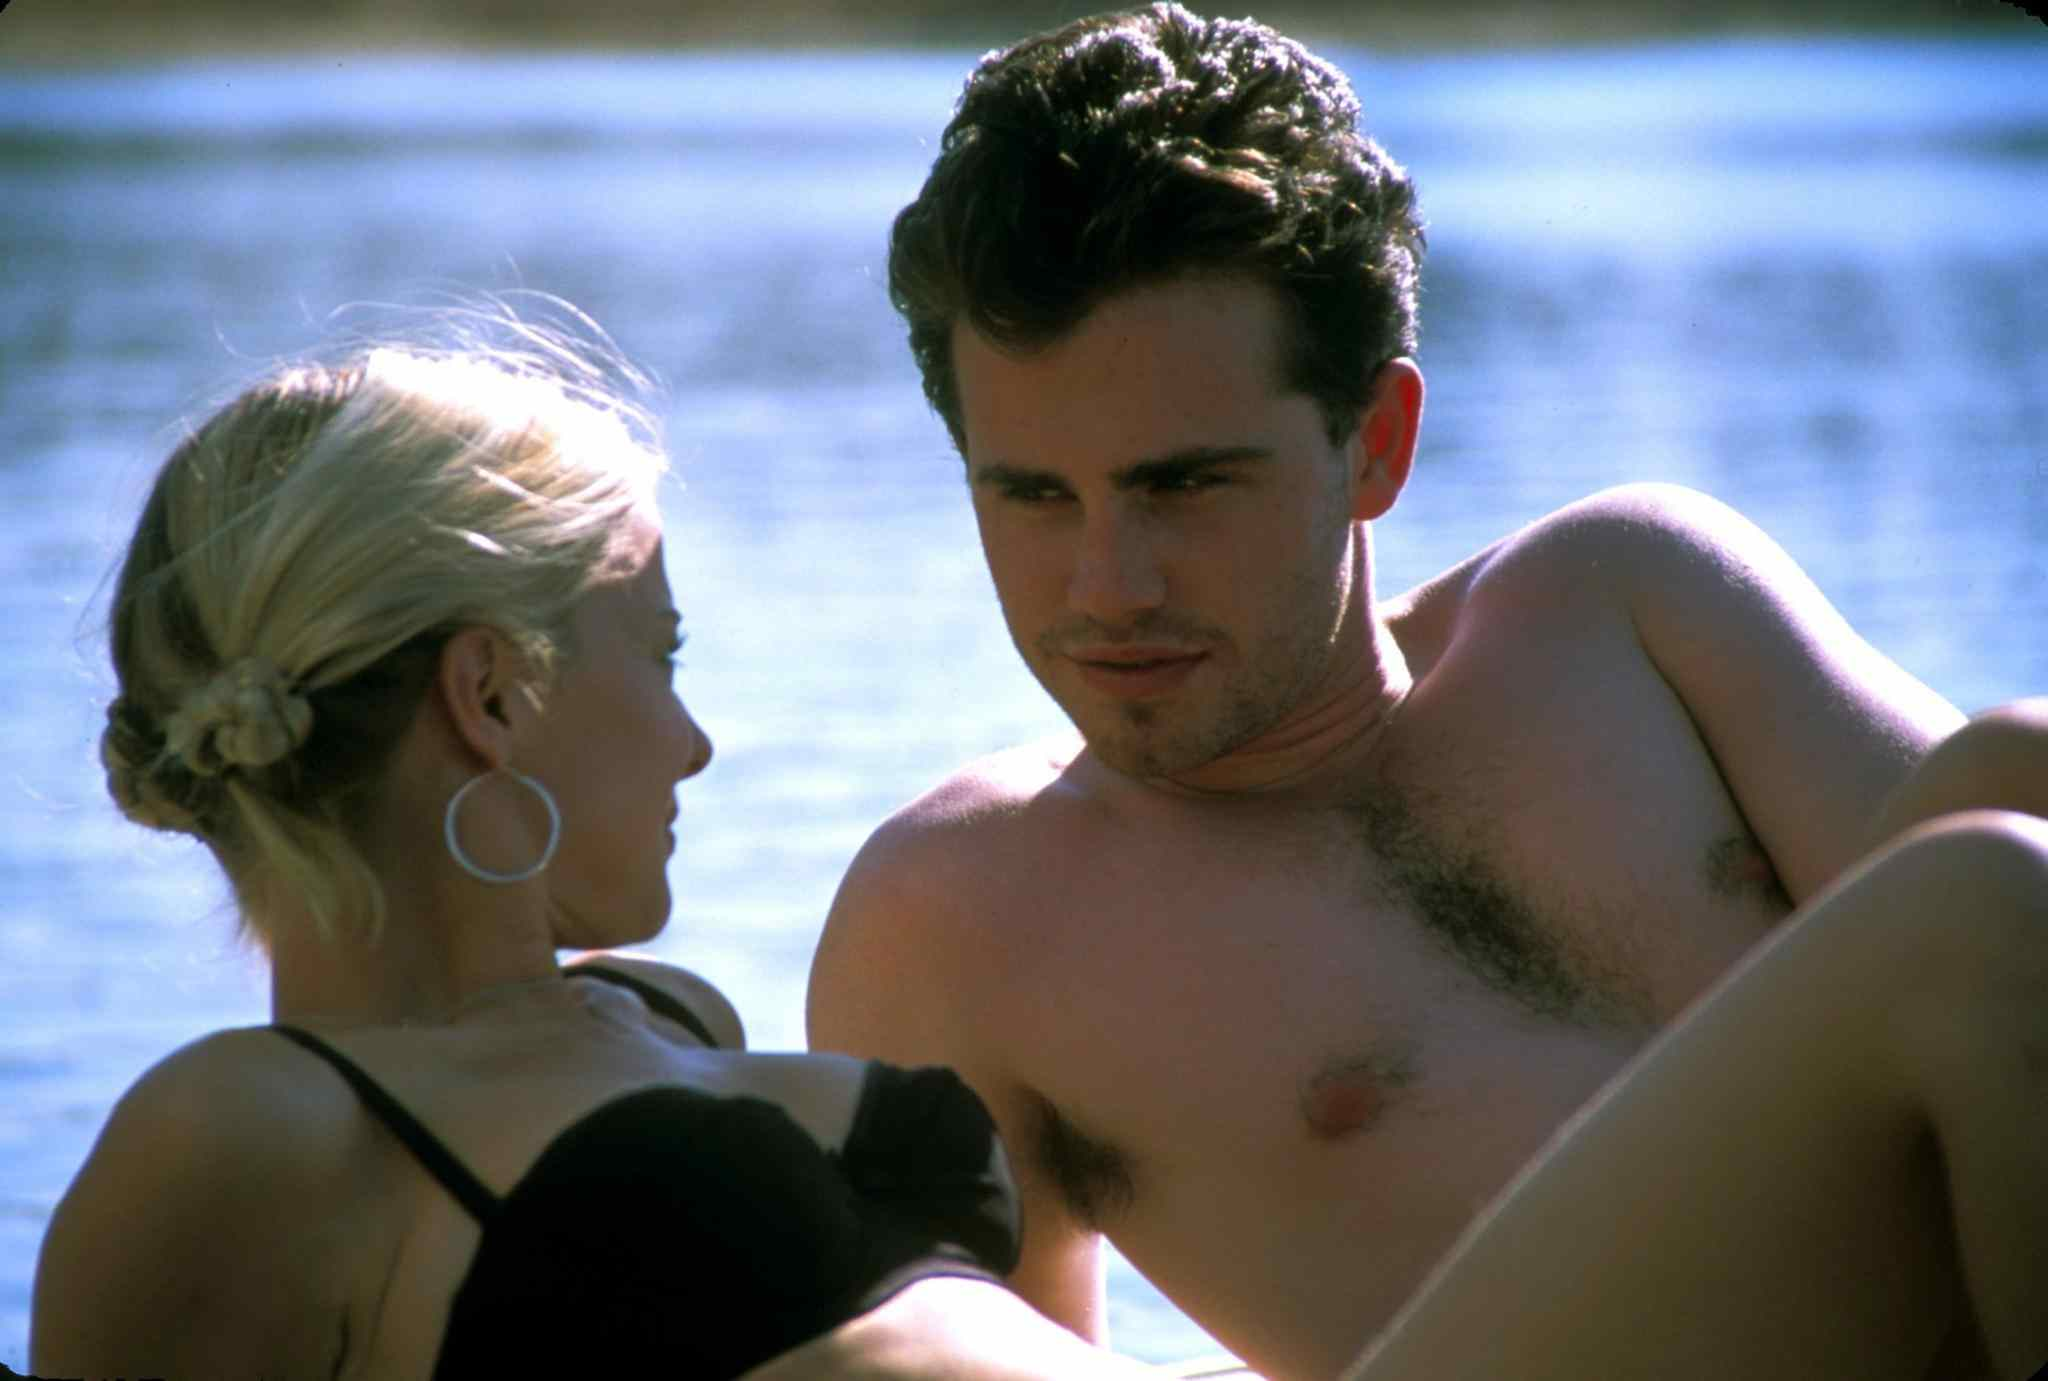 Paul (Rider Strong) and Karen (Jordan Ladd) on the dock in Eli Roth's 2002 horror film Cabin Fever.